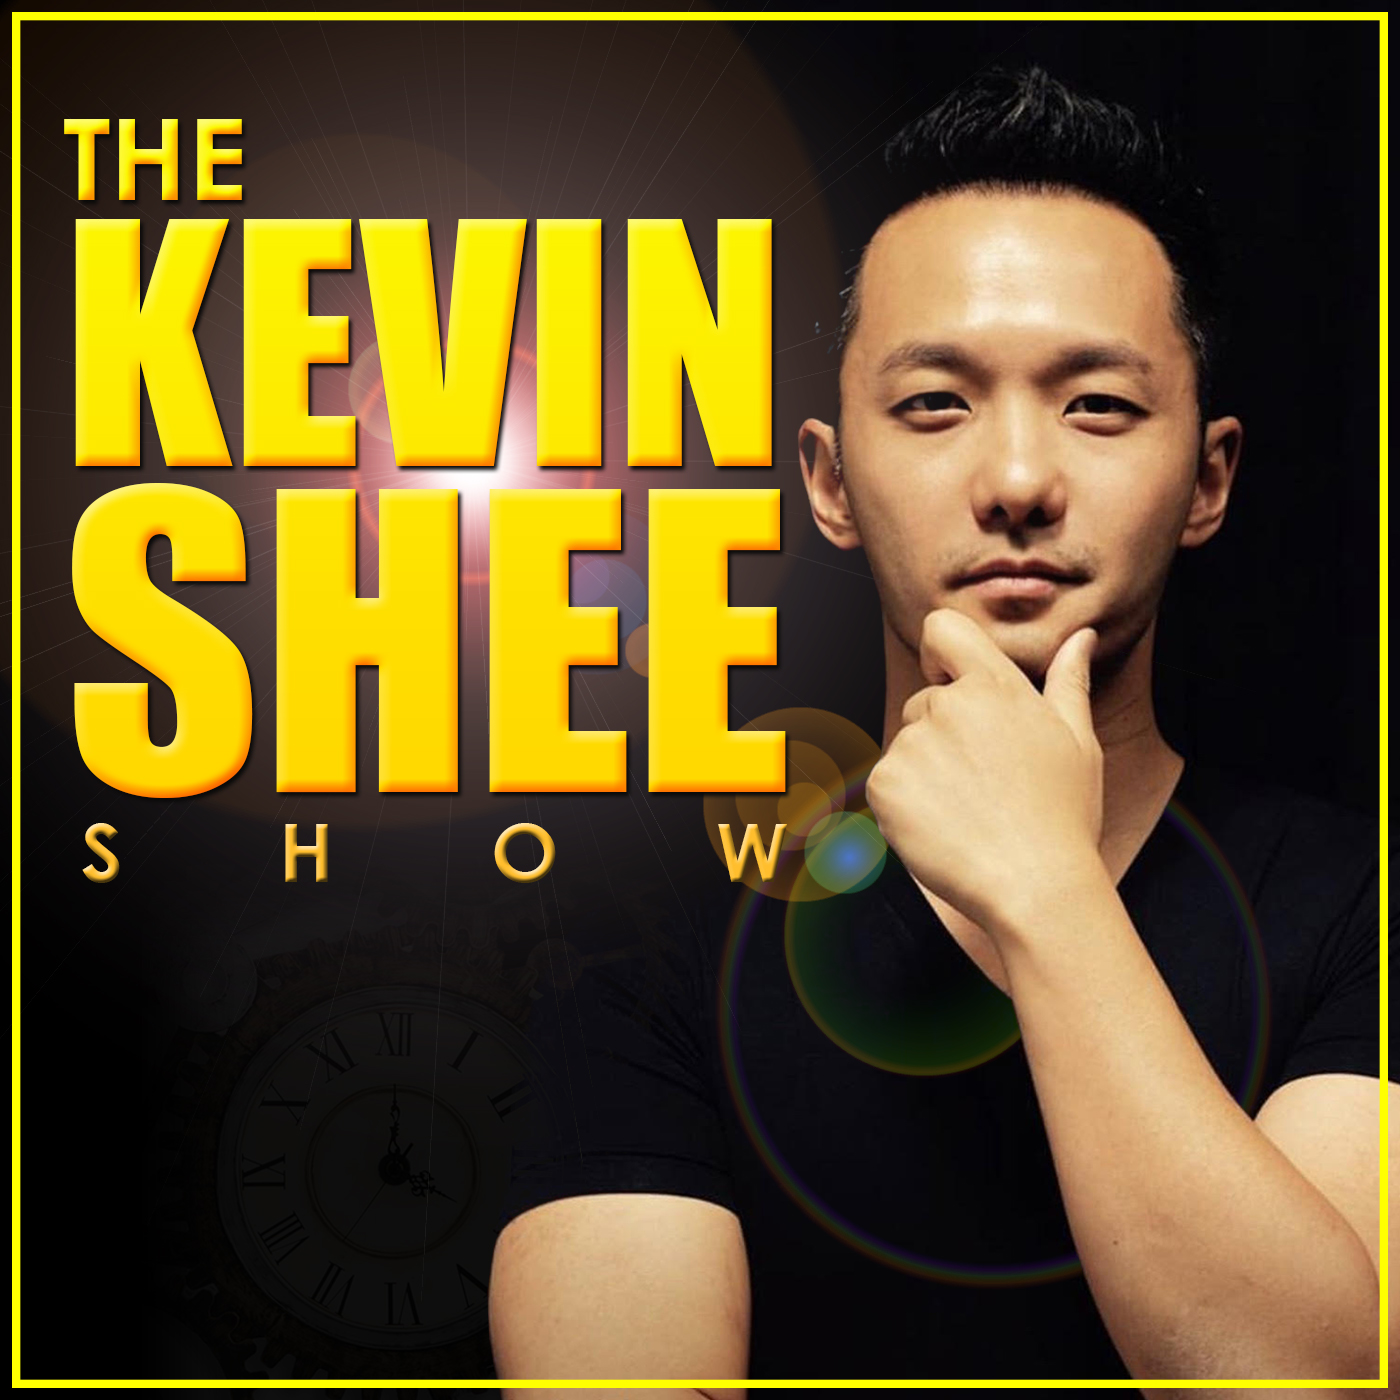 Welcome to The Kevin Shee Show